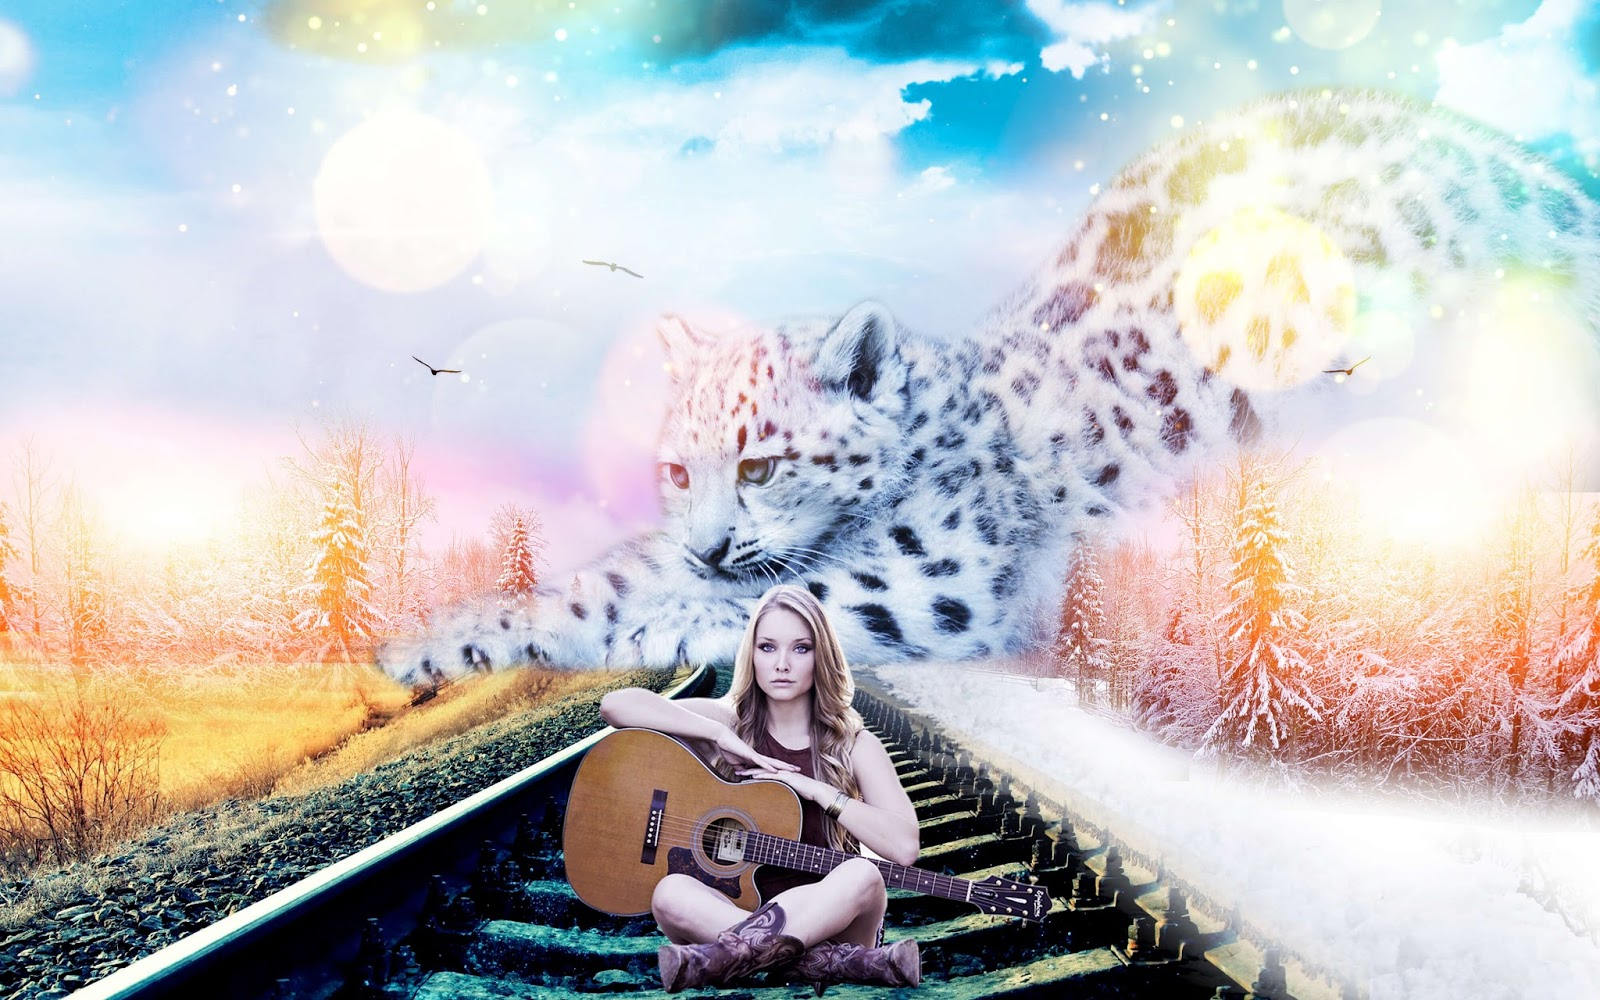 Photoshop CC Speed Art Version: Huge Fantasy Snow Leopard with Beautiful Guitar Woman Manipulation